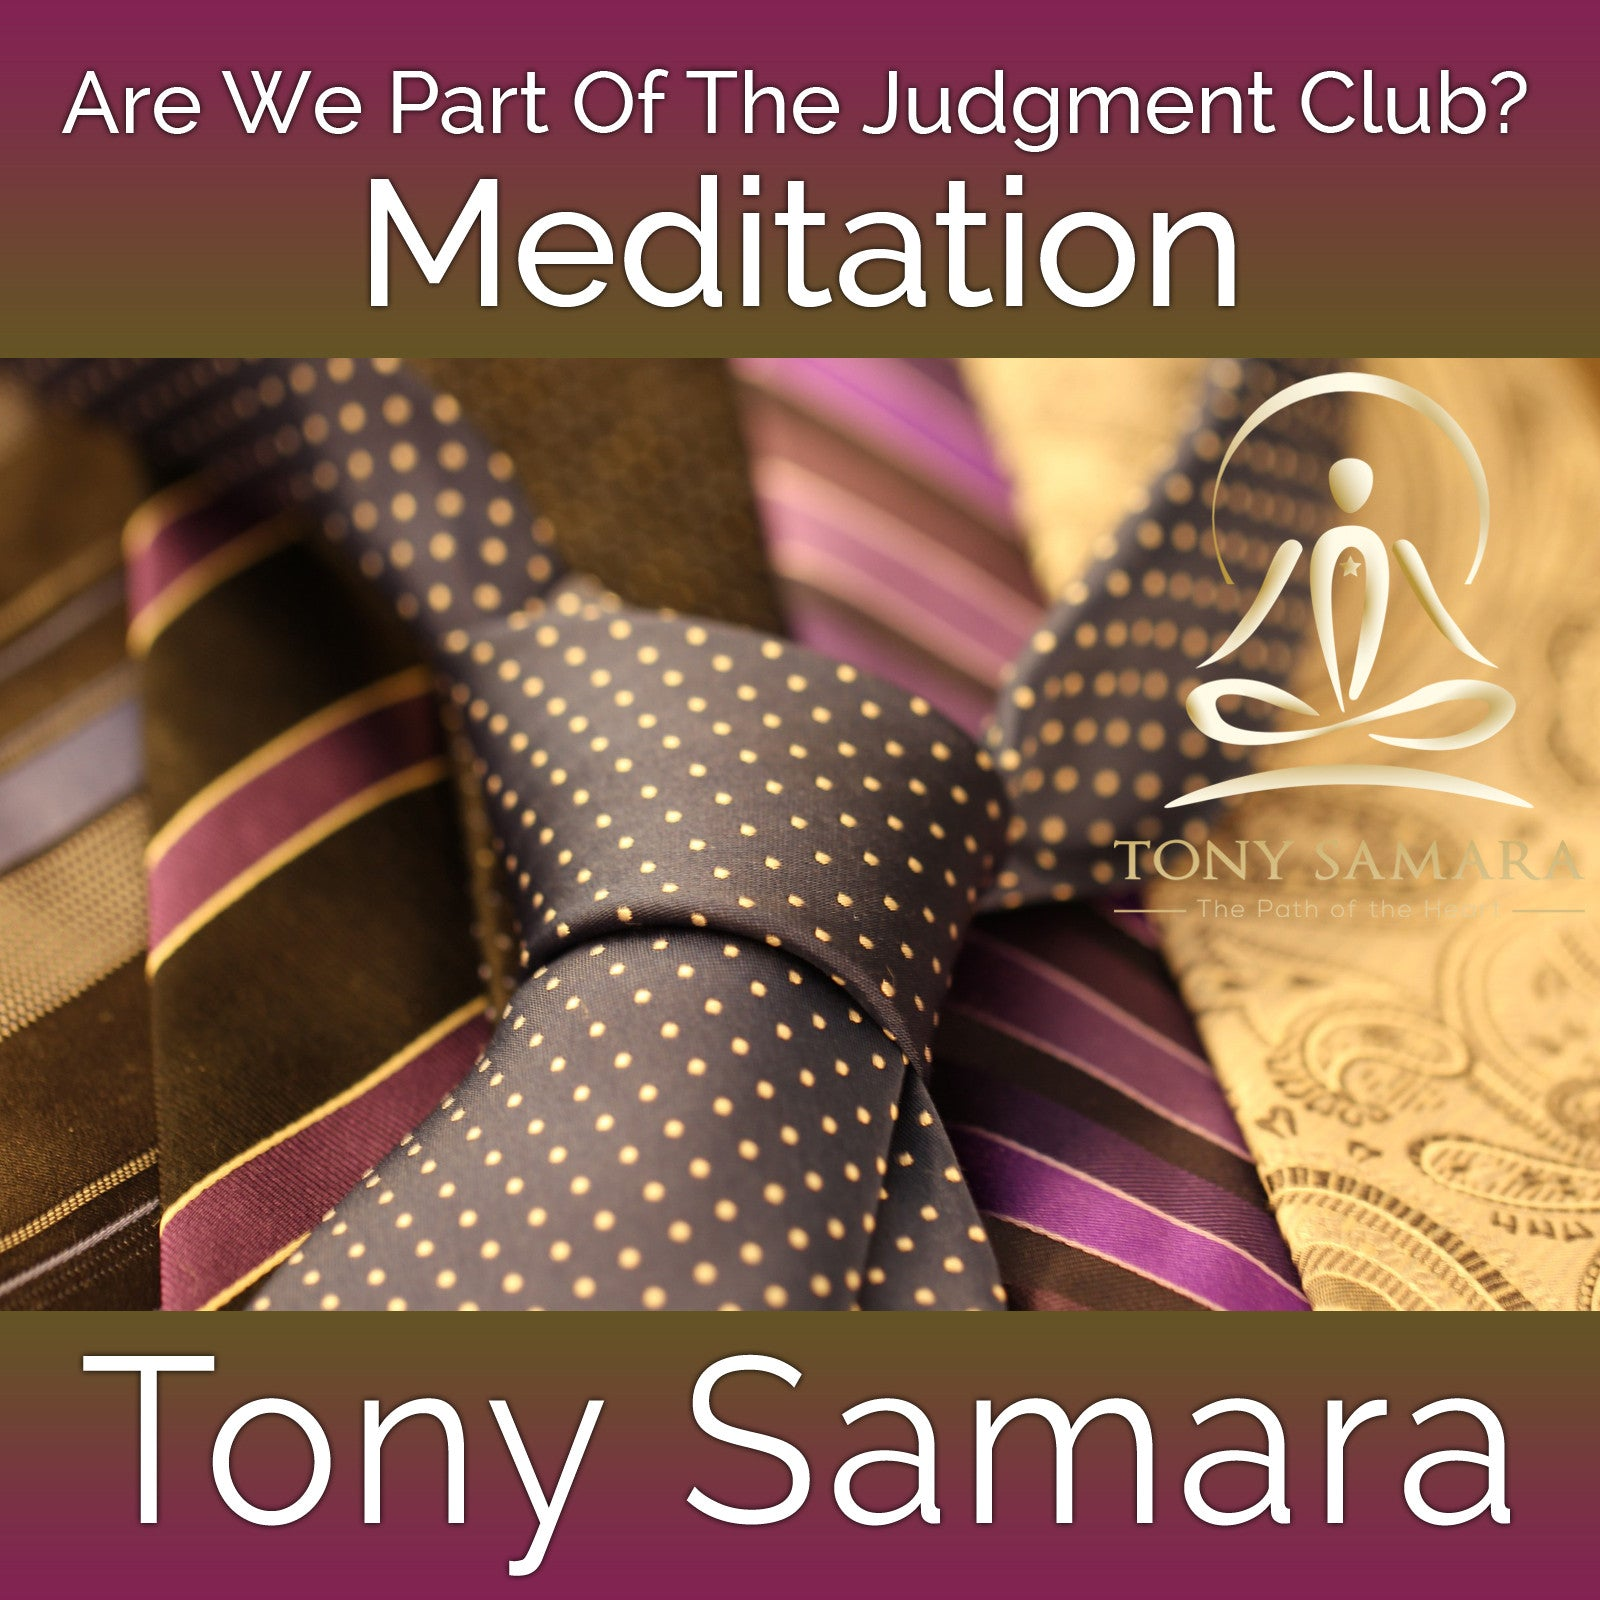 Are We Part Of The Judgment Club? (MP3 Audio Download) - Tony Samara Meditation